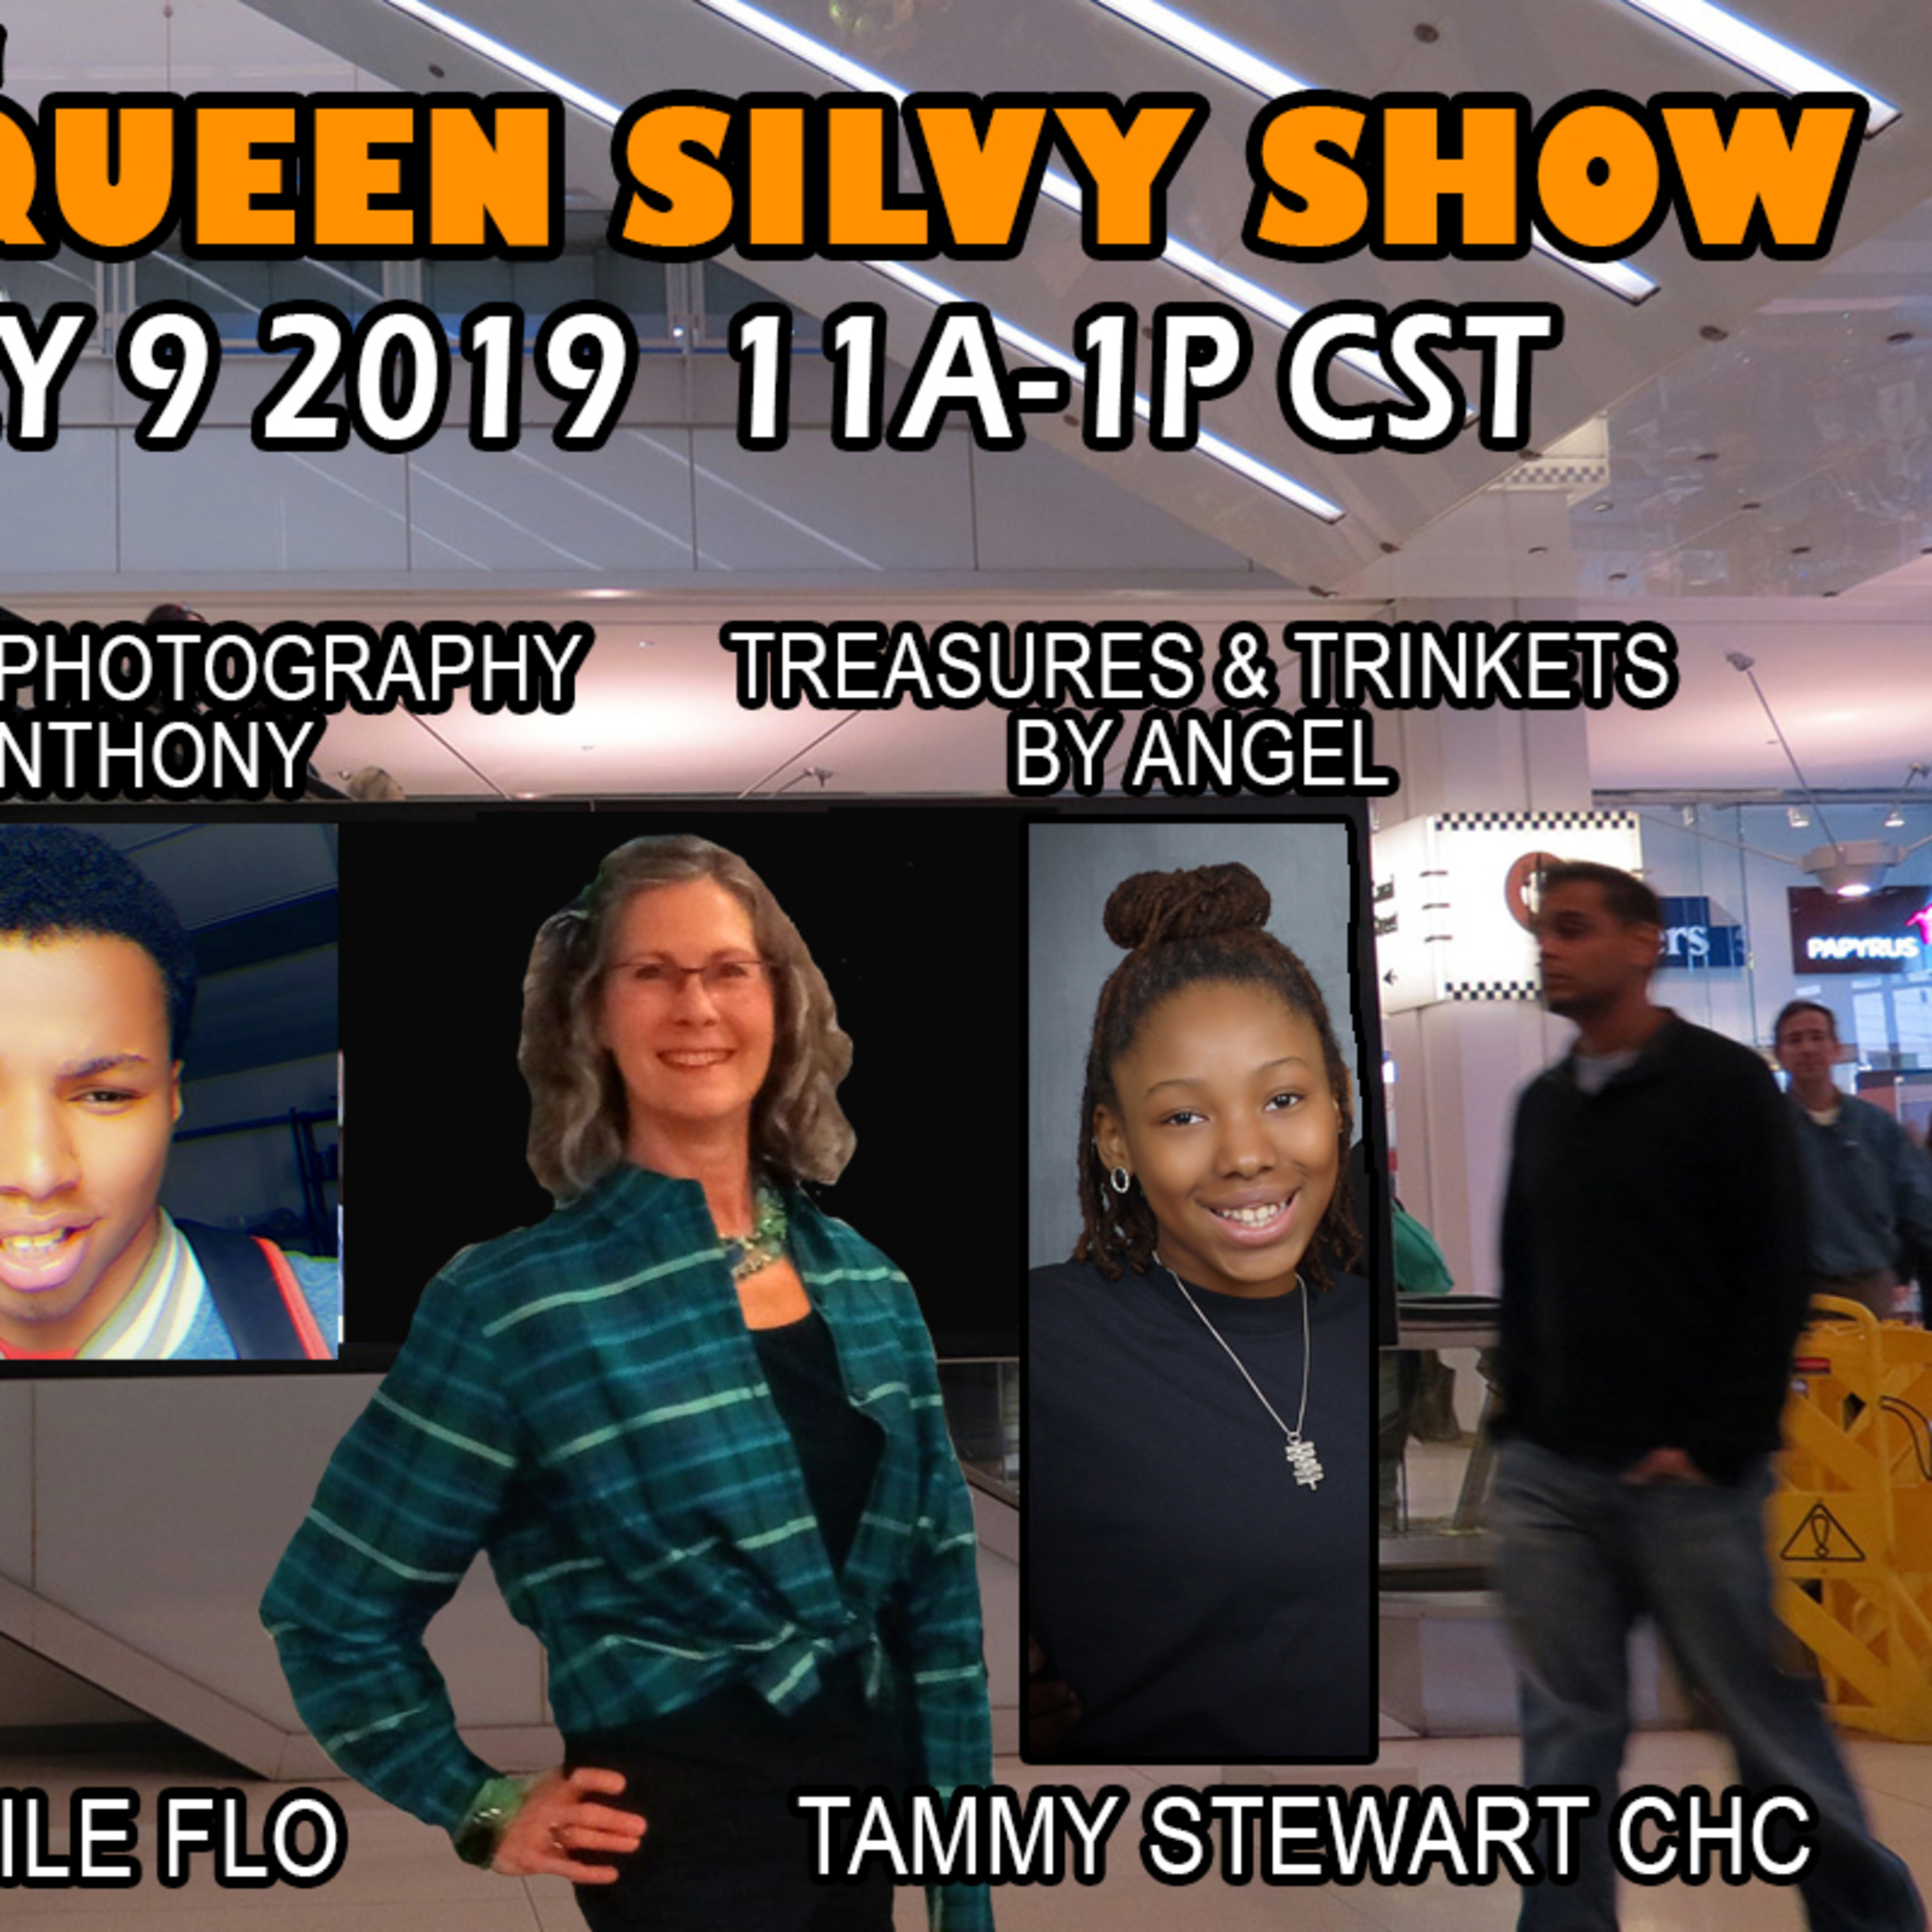 The Queen Silvy Show - July 9 2019